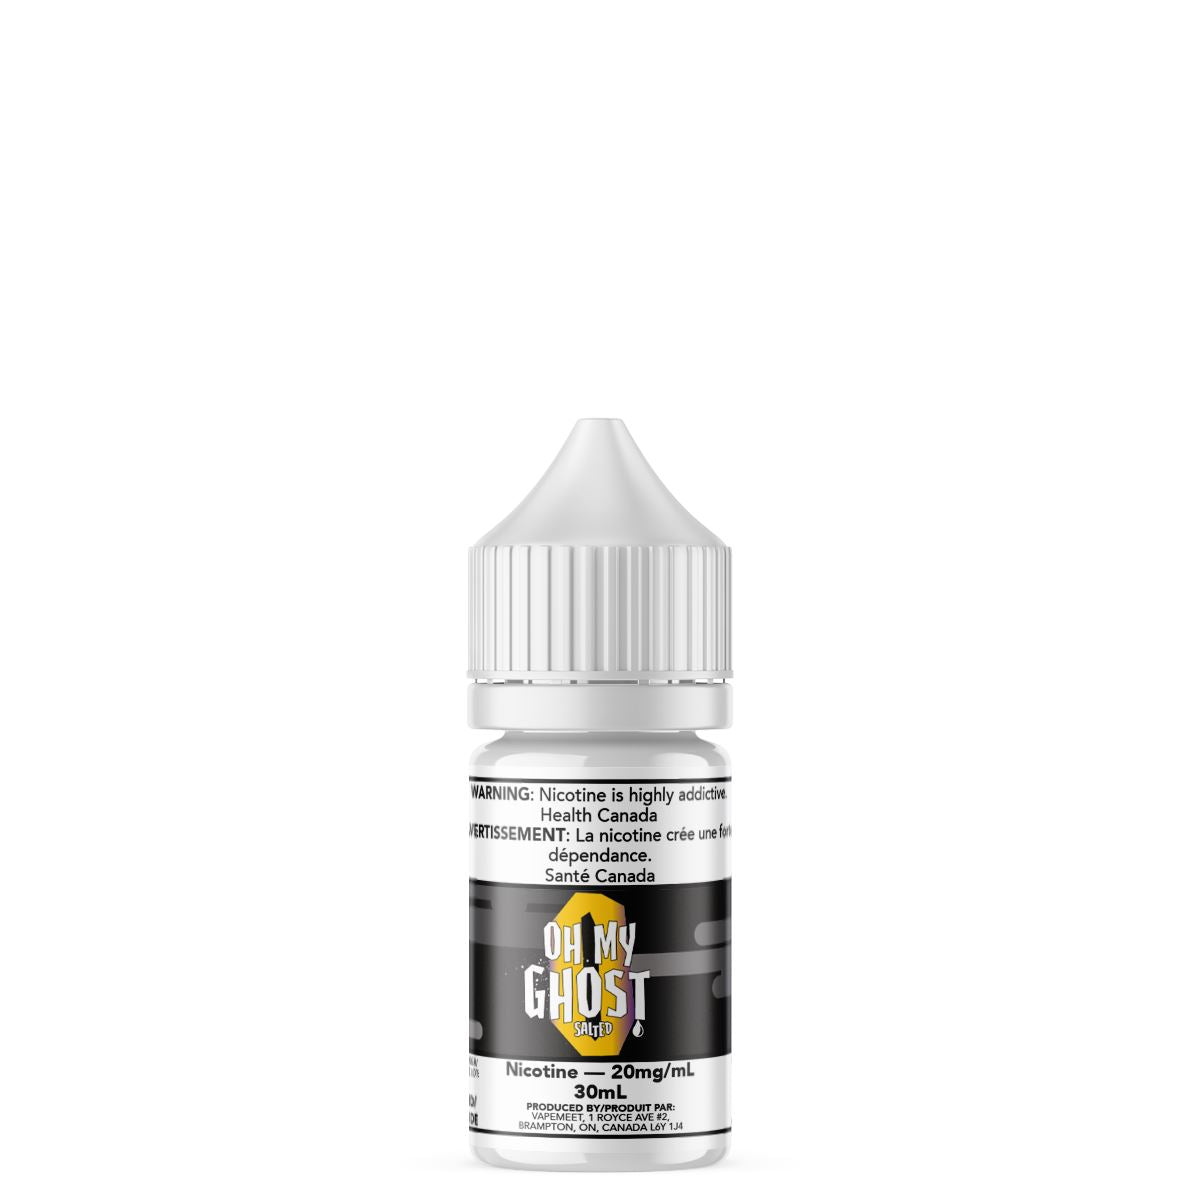 Sour Ghost Salted - OMG E-Liquid Sour Ghost Salted 30mL 10 mg/mL